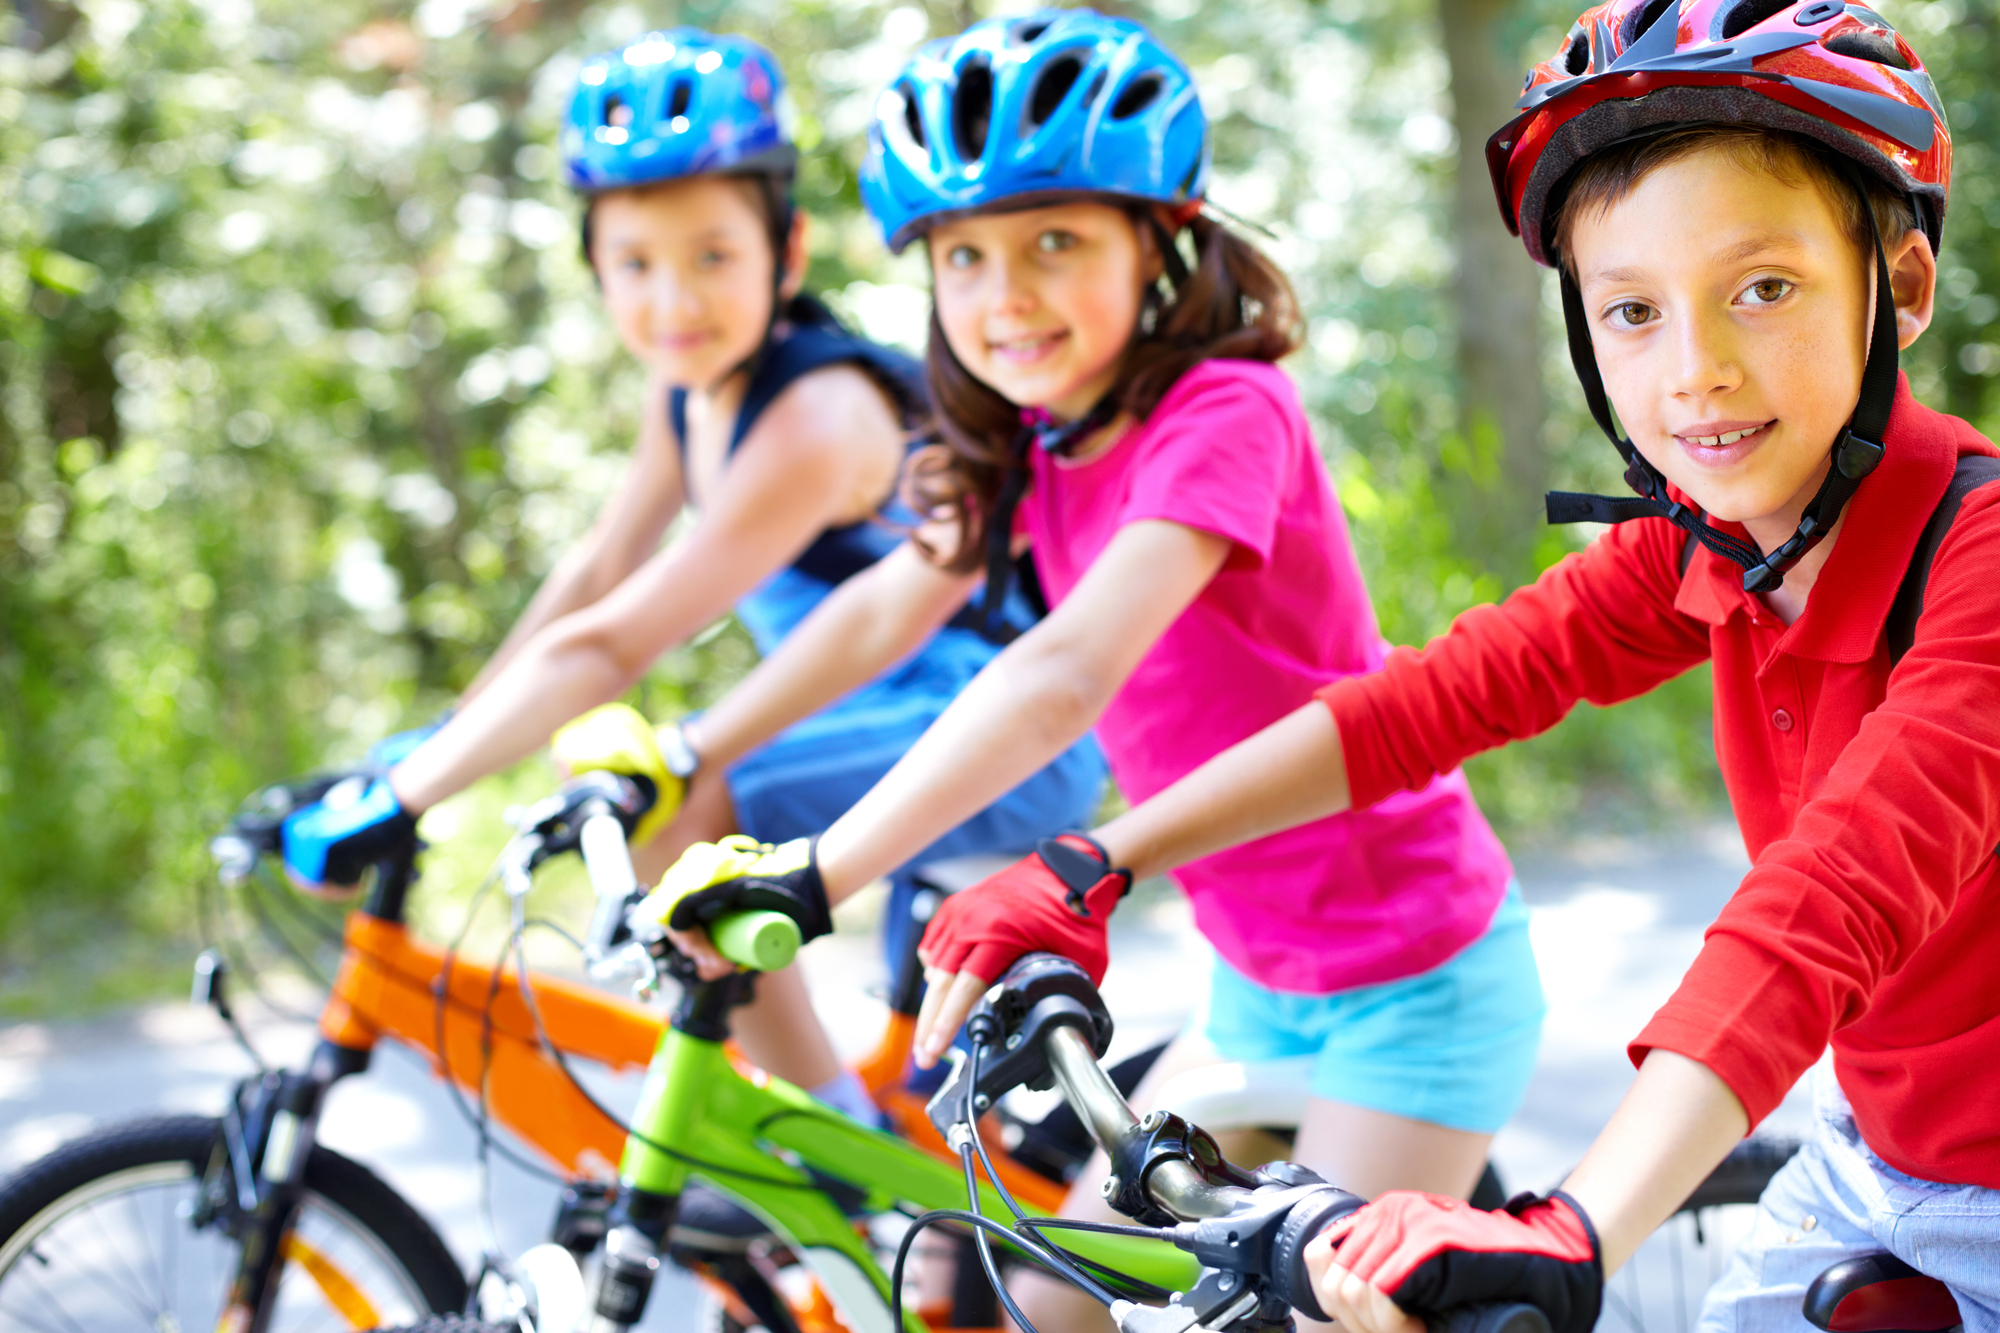 Canyon View Pediatrics Bike Safety